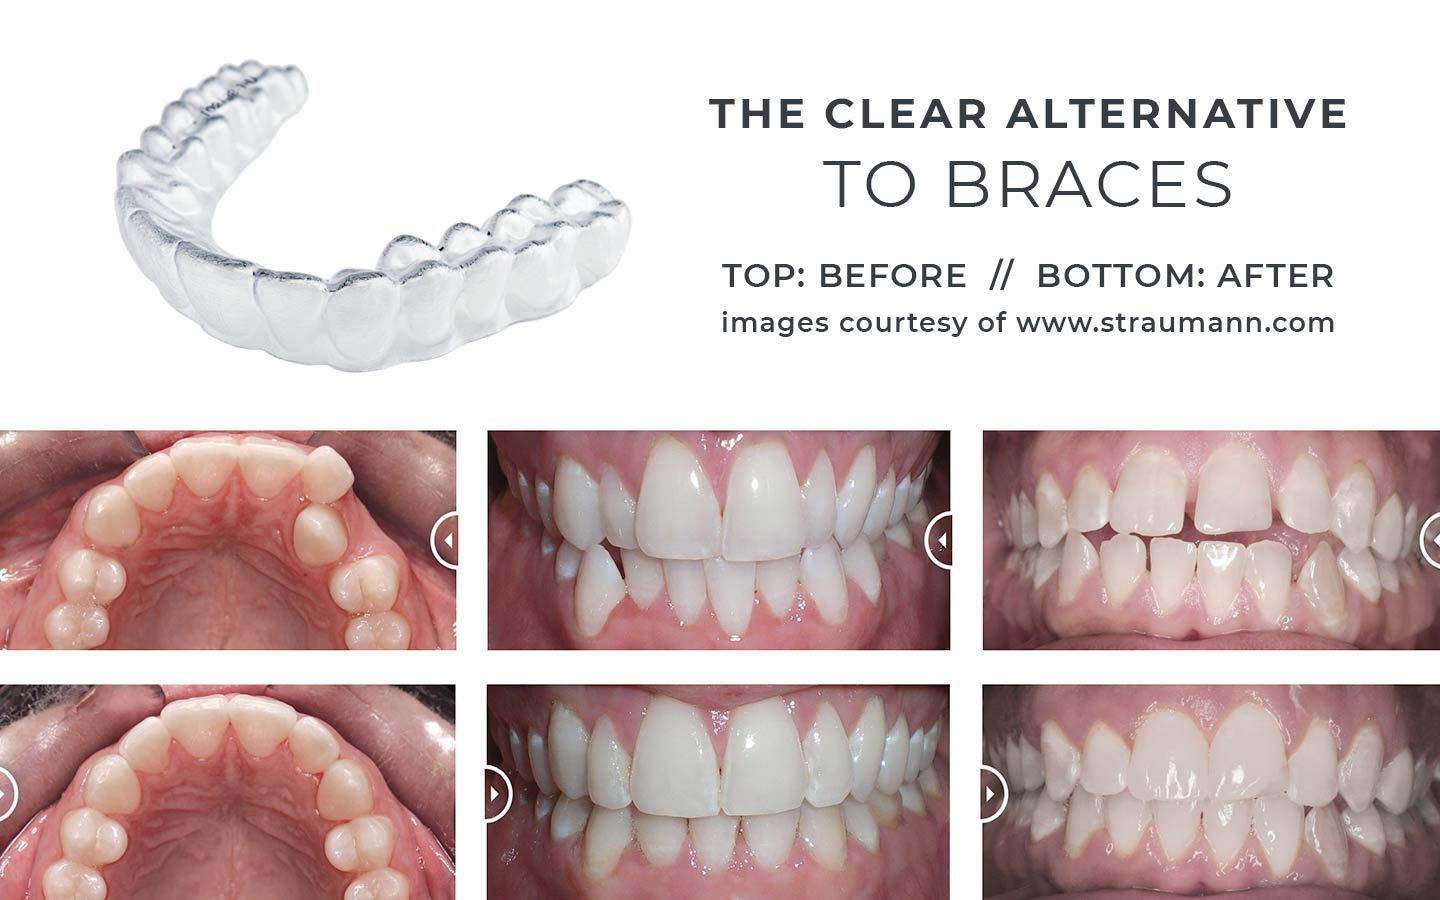 The clear alternative to braces, photos of clear aligners